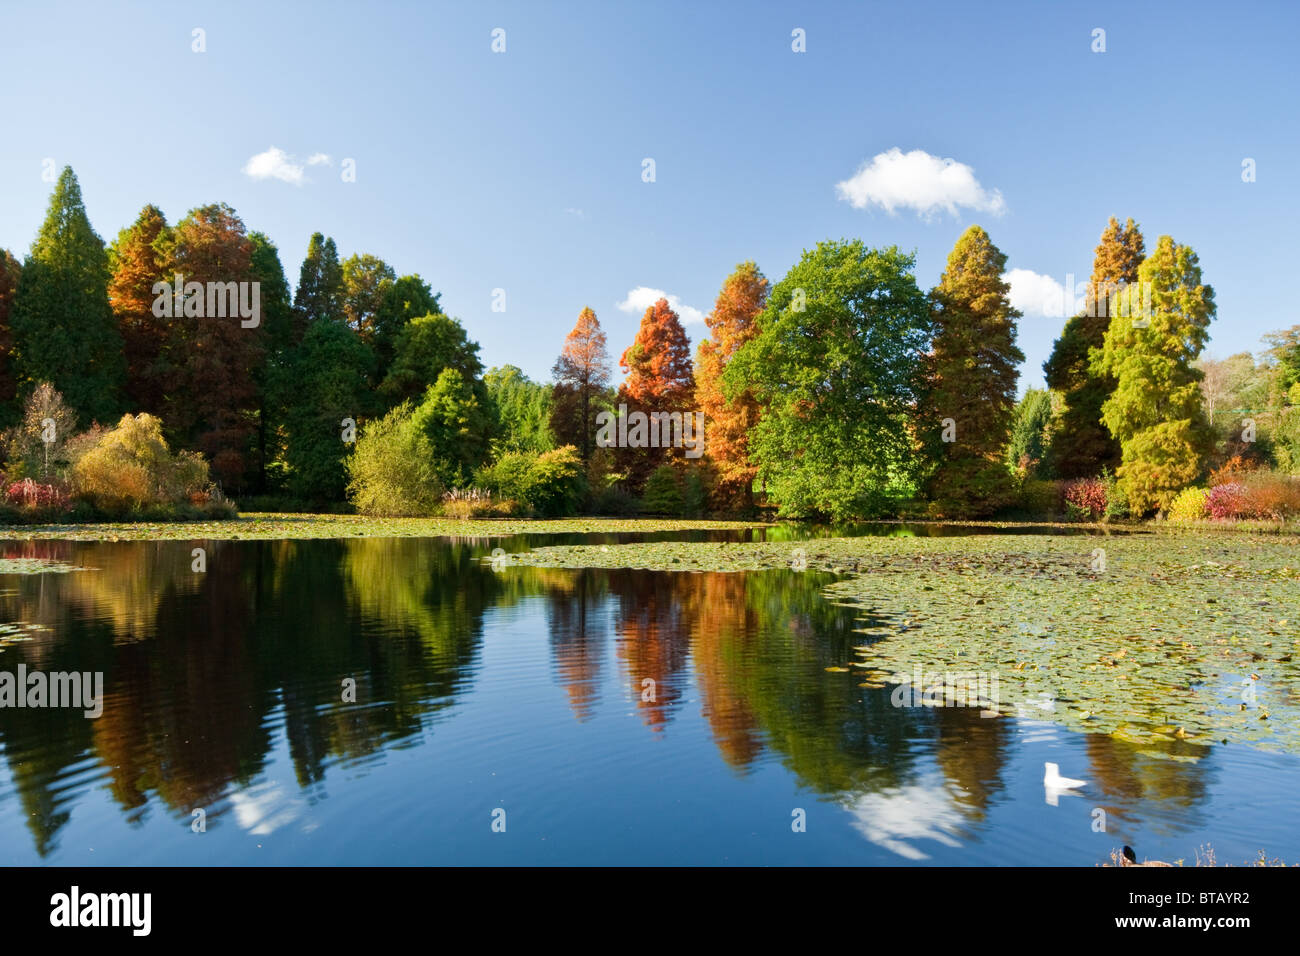 Autumnal Colours at Marshalls Lake in Bedgebury National Pinetum - Stock Image